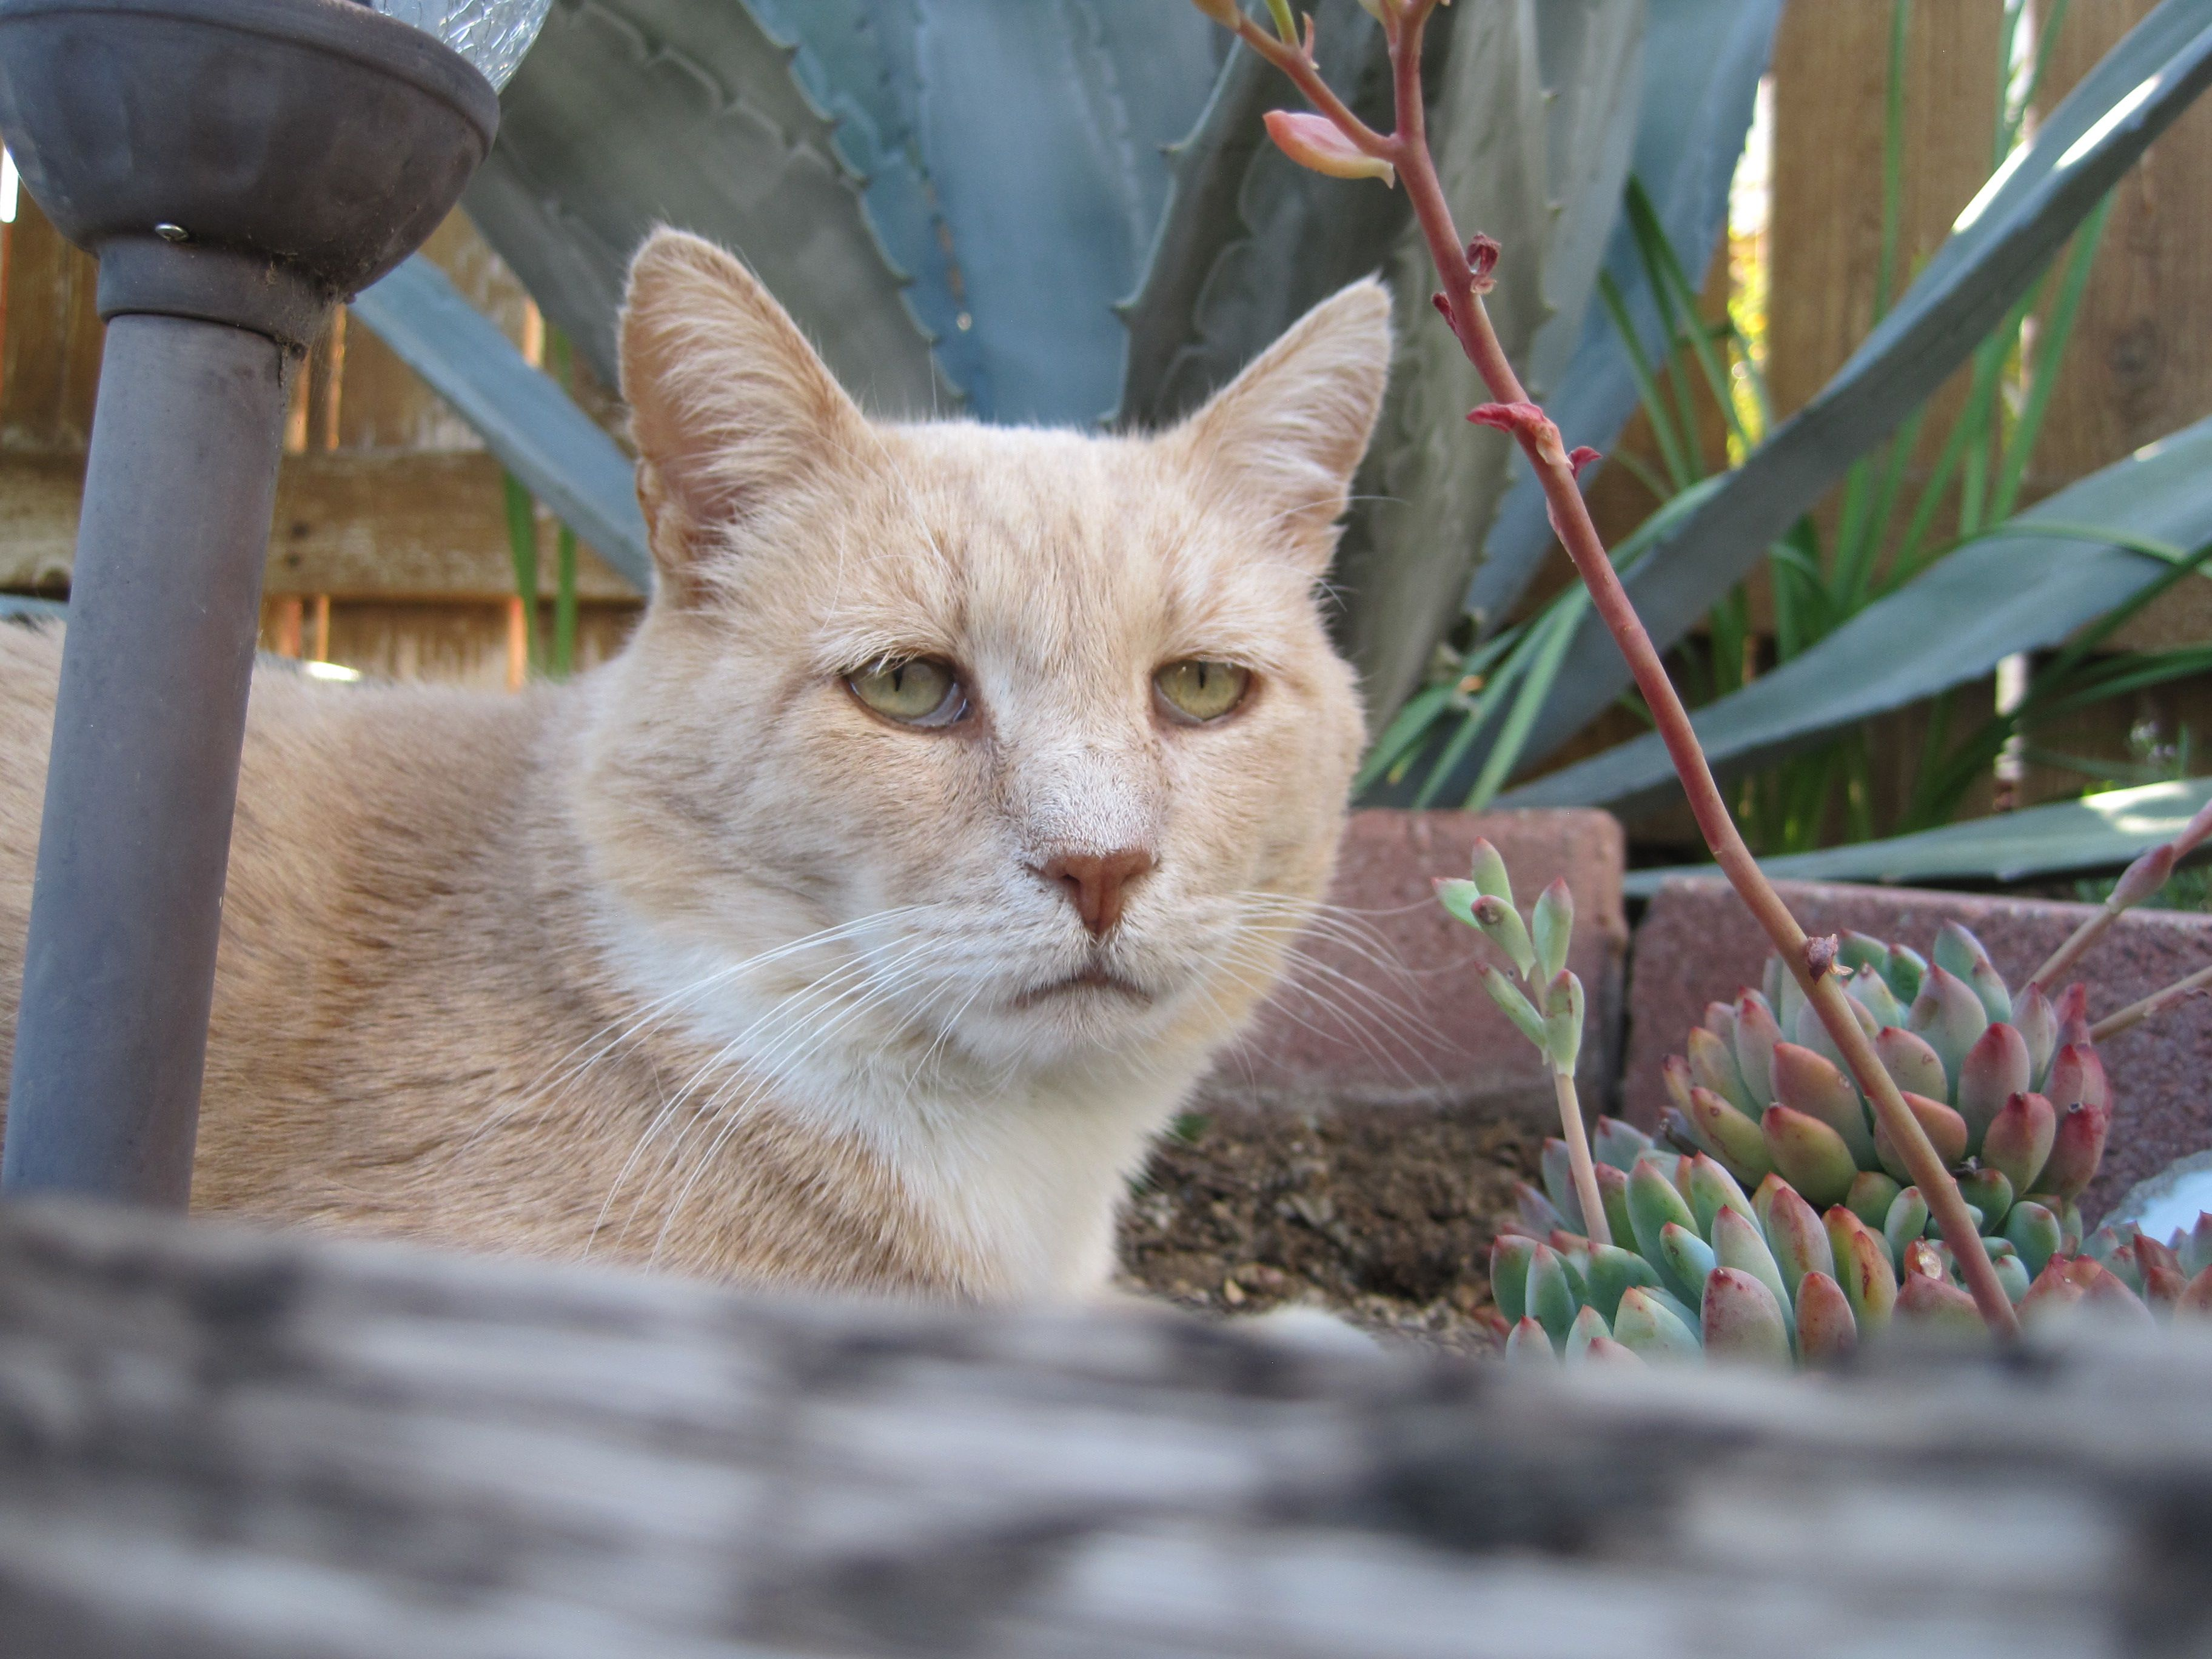 Freddie With Attitude Light Color Blonde Or Buff Tabby Cat His Fur Looks Frosted Orange Cats Cats And Kittens Tabby Cat